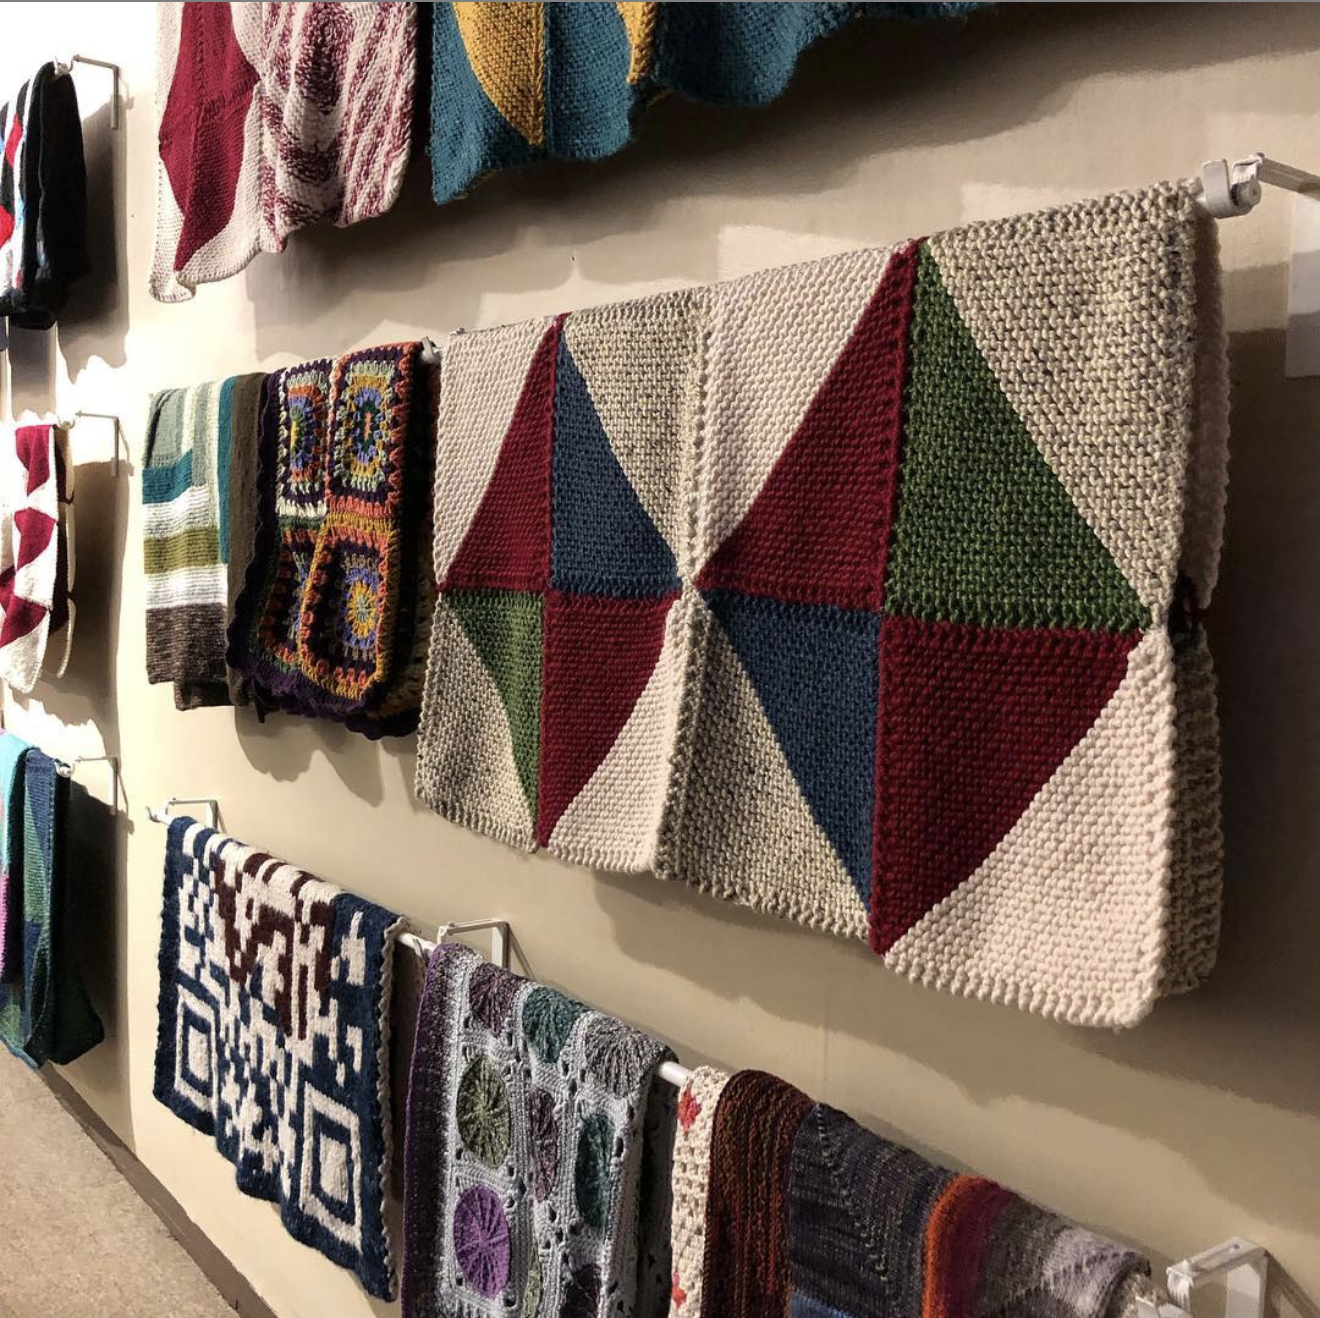 Welcome Blanket at Fuller Craft, our third host!